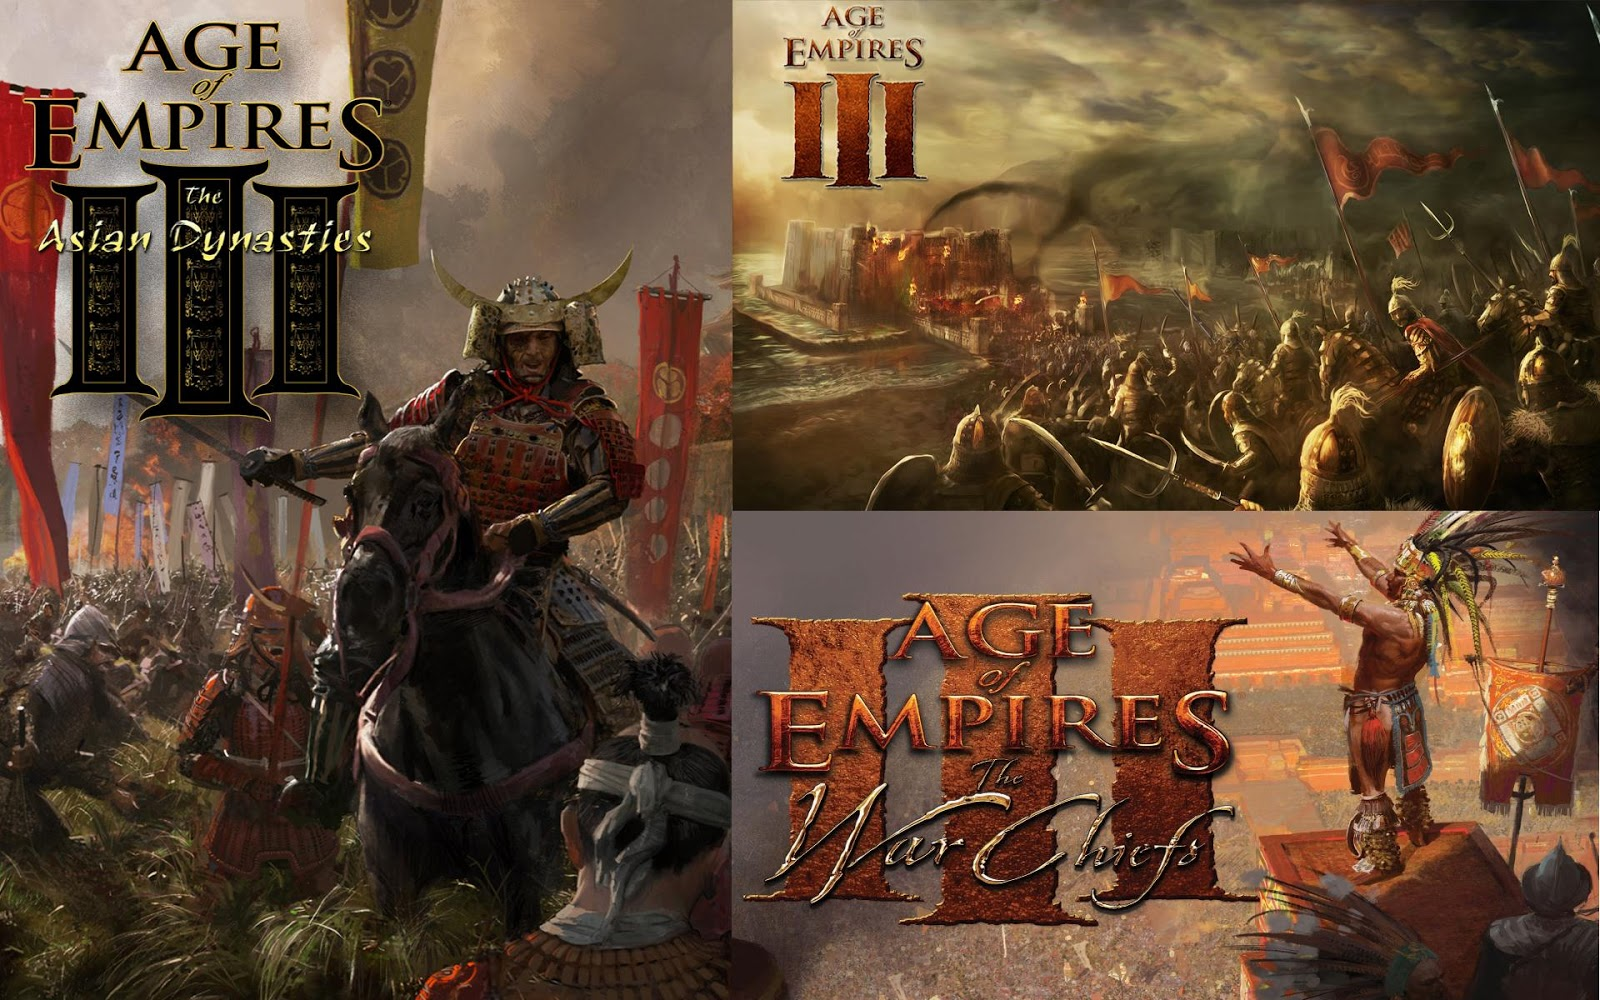 Age of empires iii aoe 3 for mac os x crack activated free.